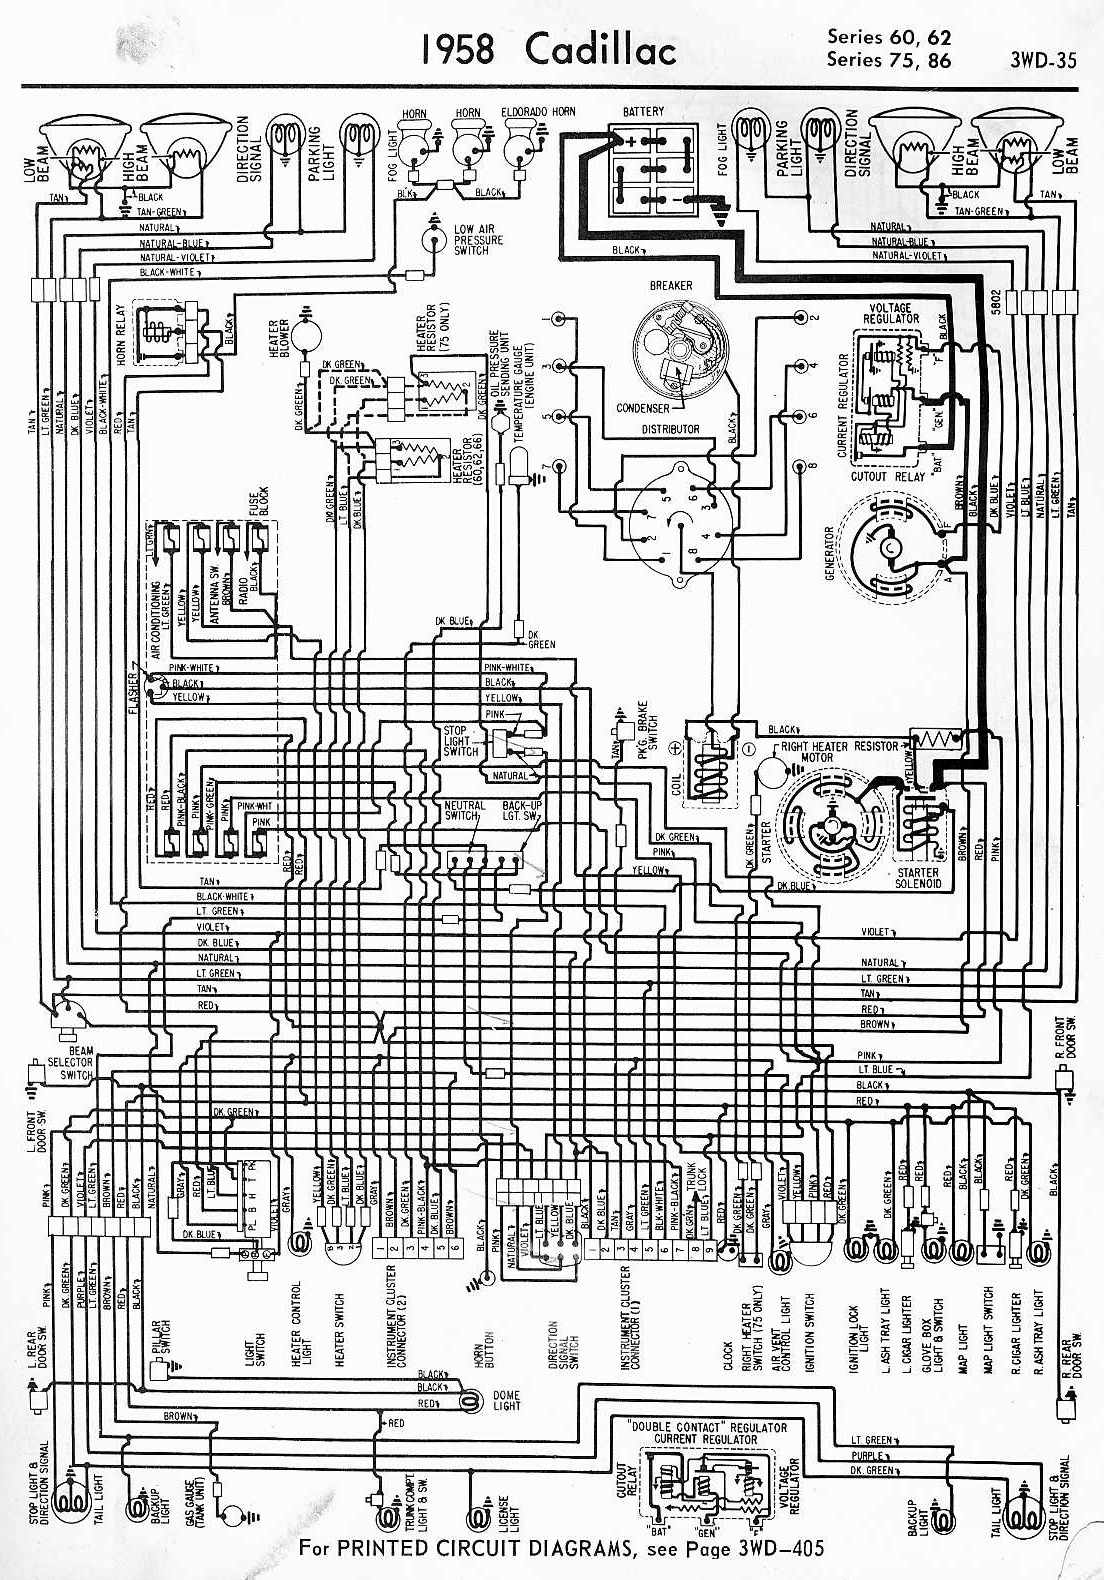 1957 Corvette Wiring Diagram Just Another Blog 1967 Chevy Cadillac Free Download Schematic Diagrams Rh 71 Jessicadonath De Ignition Switch